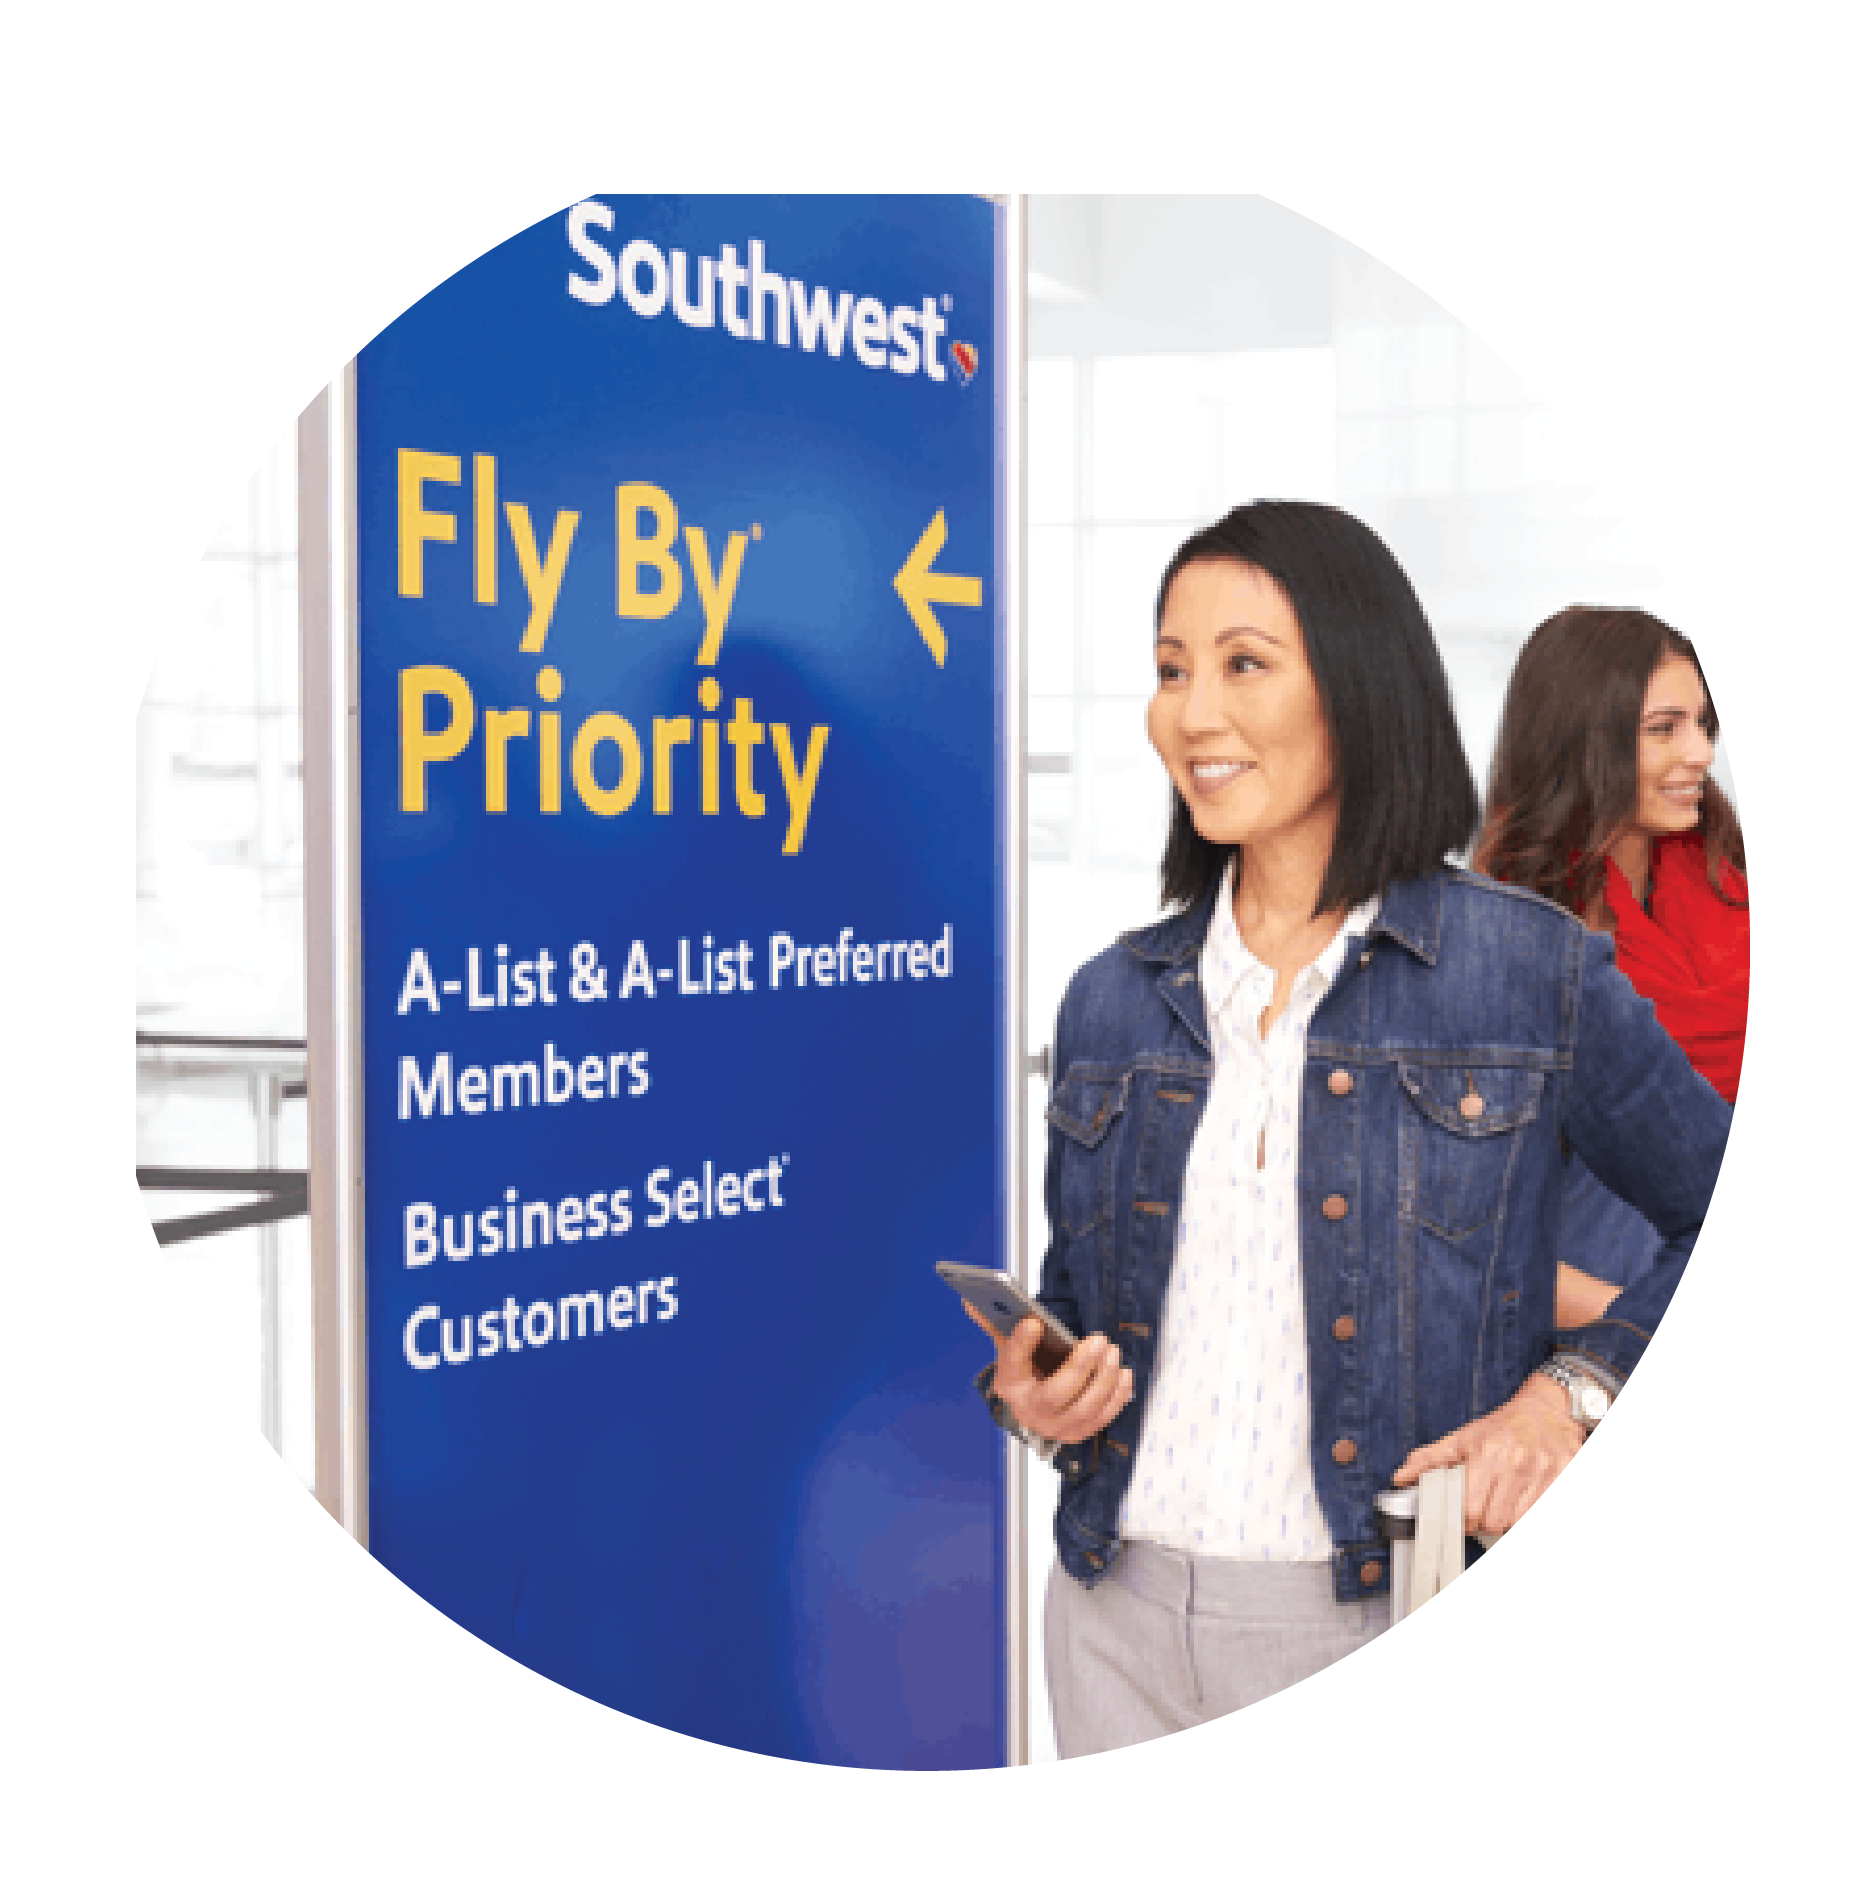 Priority Check-in at Airport with Southwest